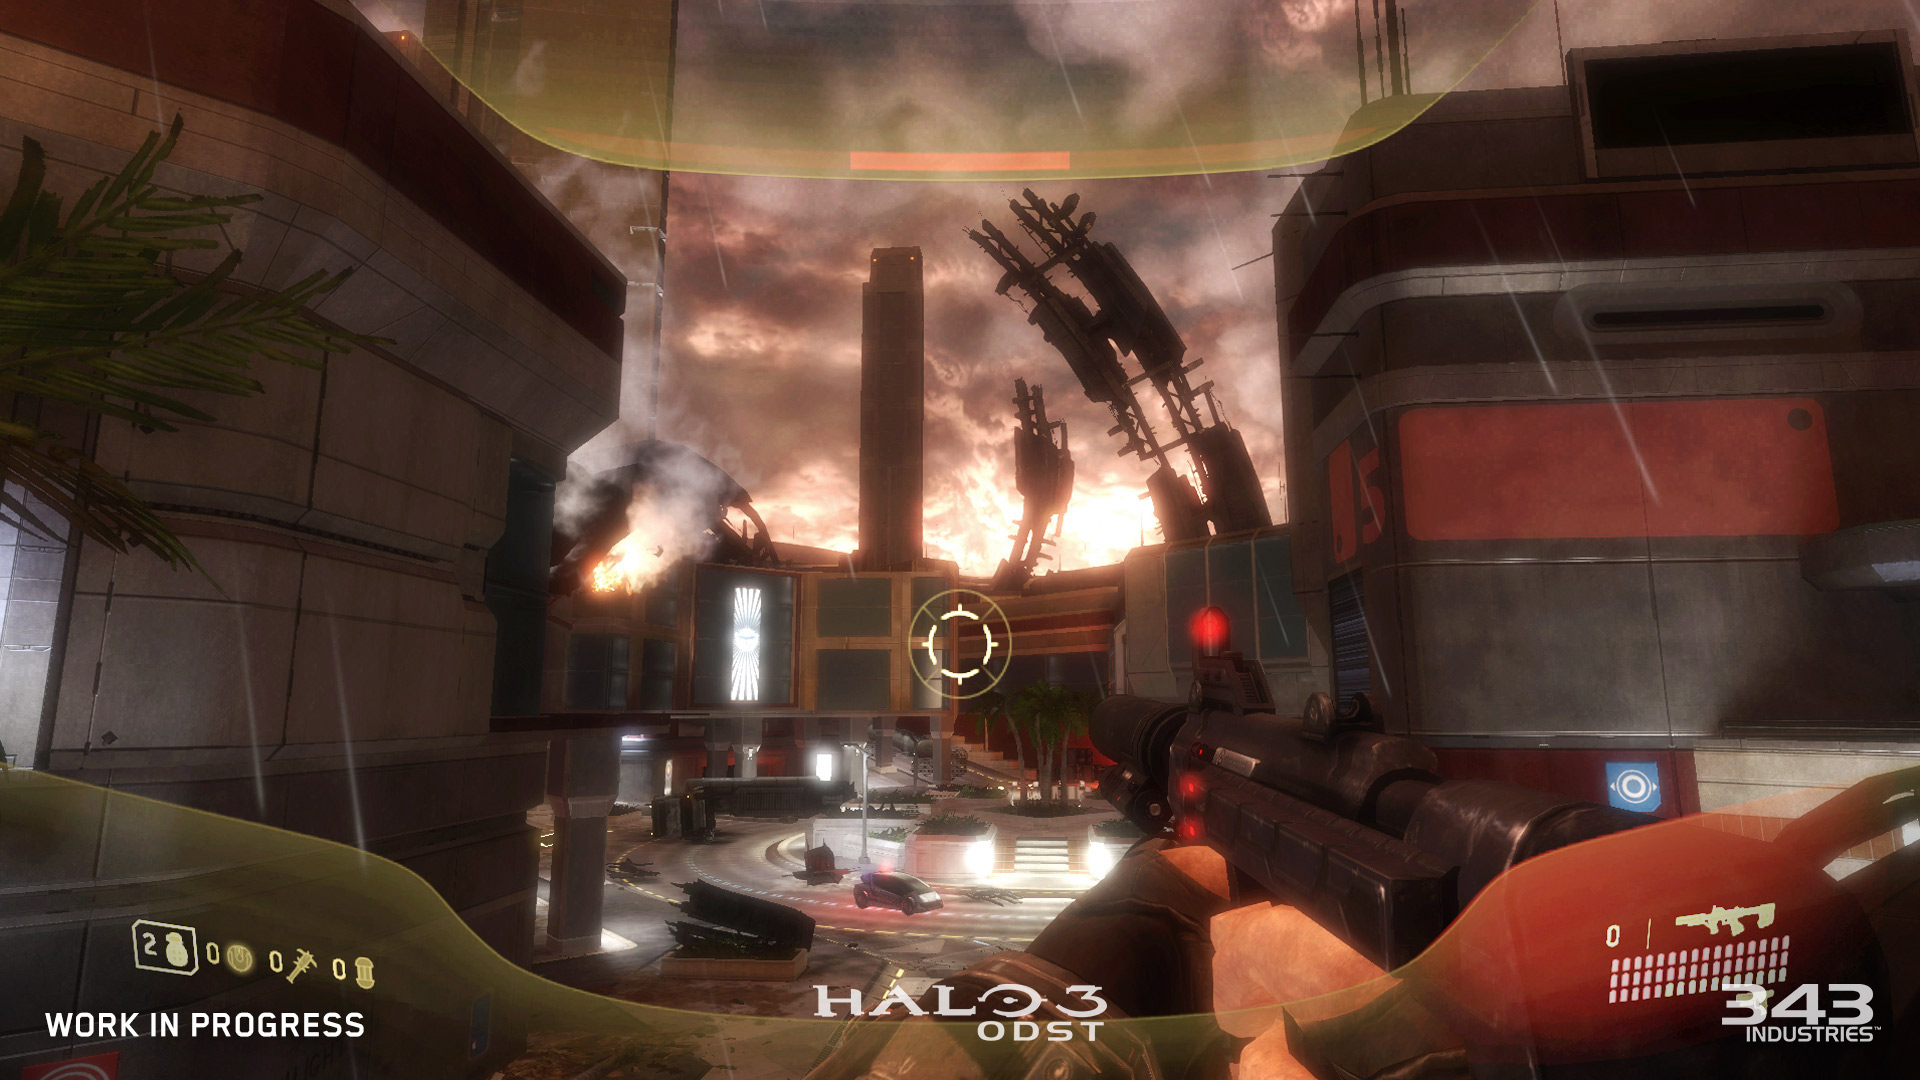 halo-the-master-chief-collection-odst-plaza-57e9952a83574ef8b87f5d19df5150ee.jpg